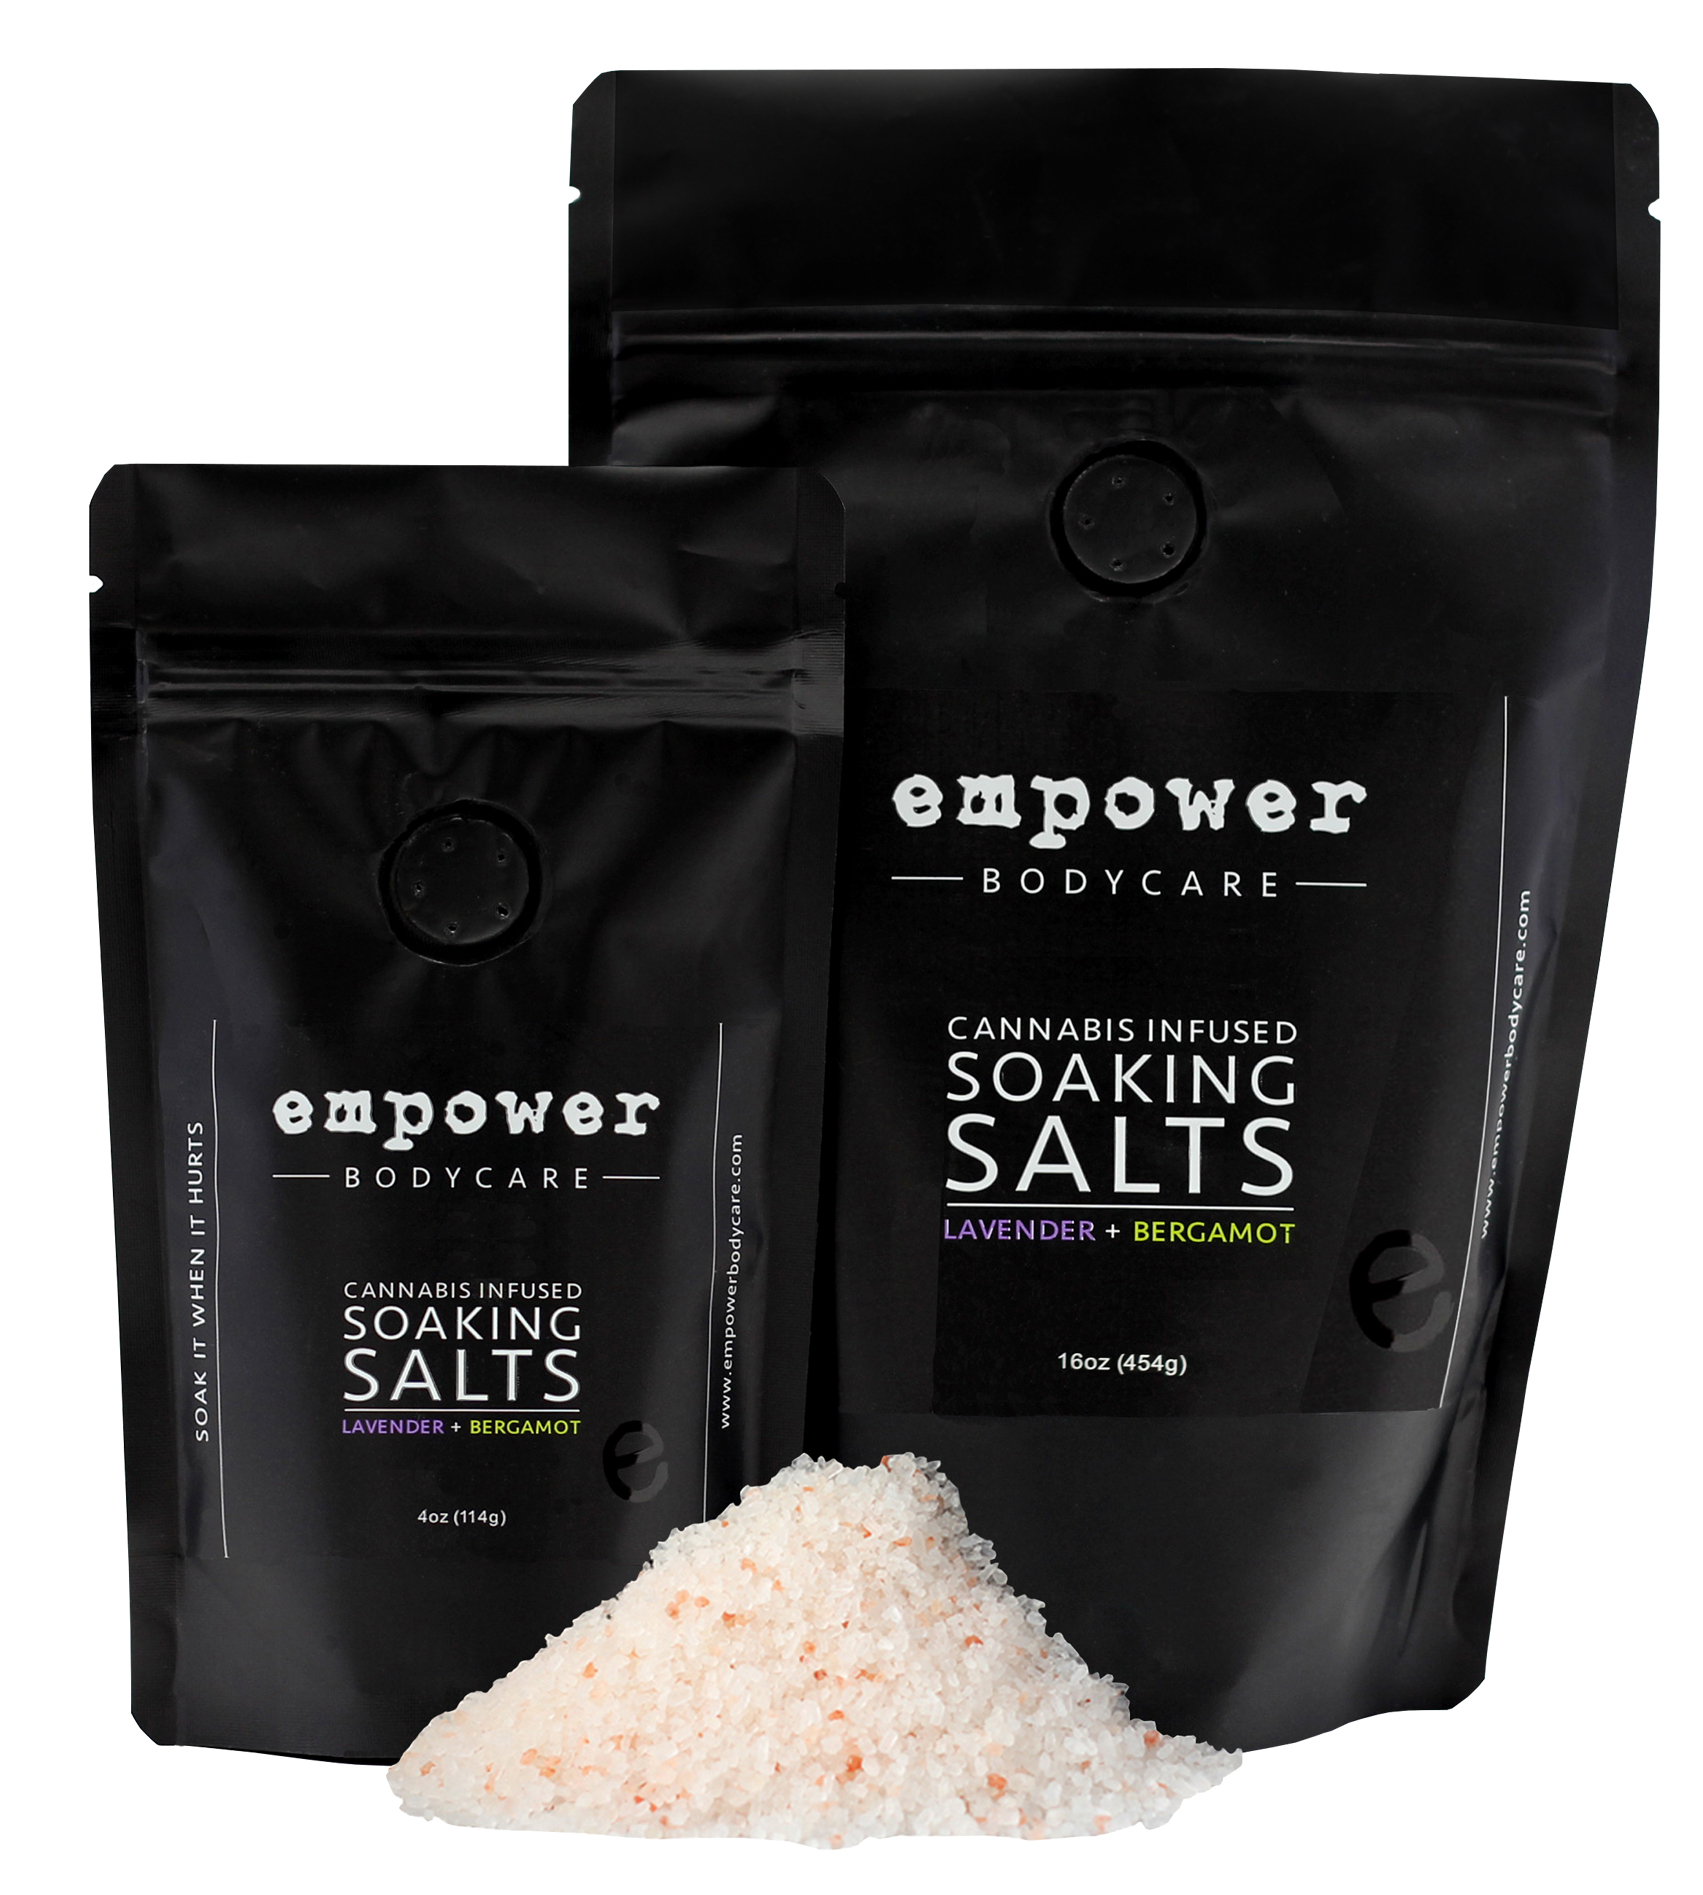 Empower Soaking Salts Cannabis Infused.jpg